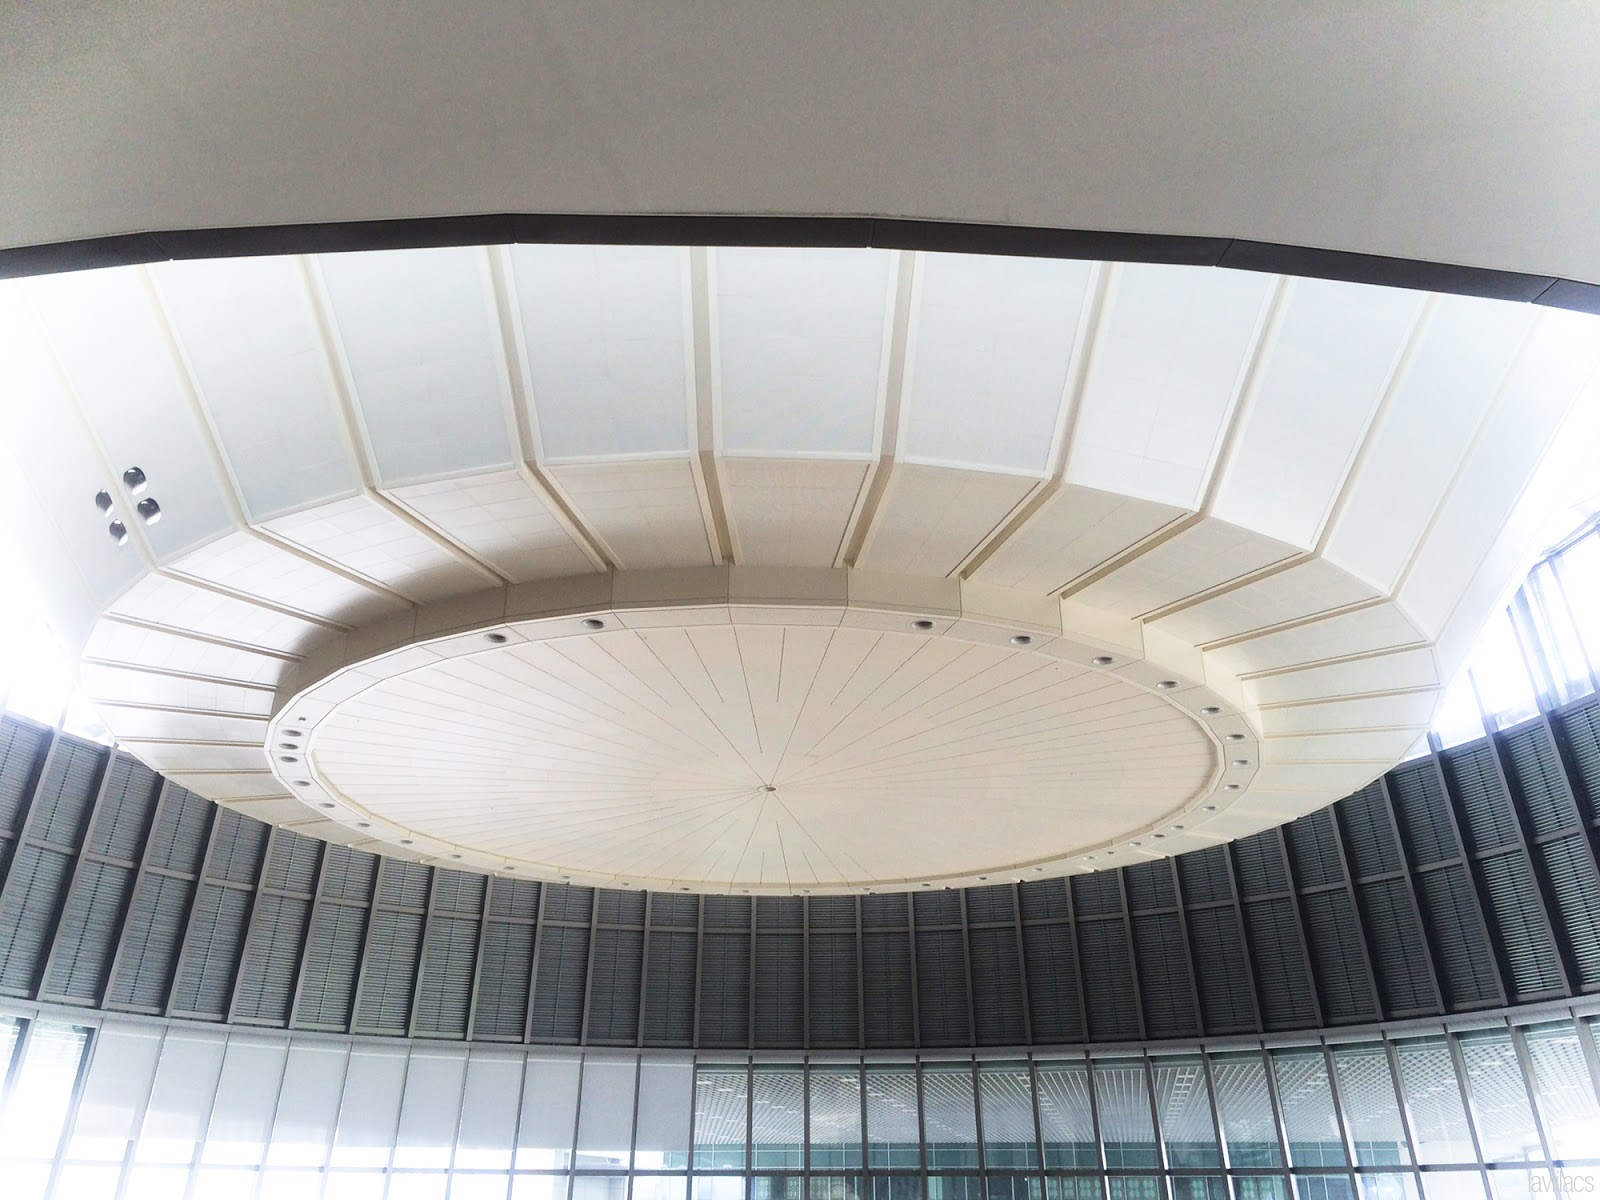 Seoul, Korea - Summer Study Abroad 2014 - National Museum of Korea 국립중앙박물관 architecture